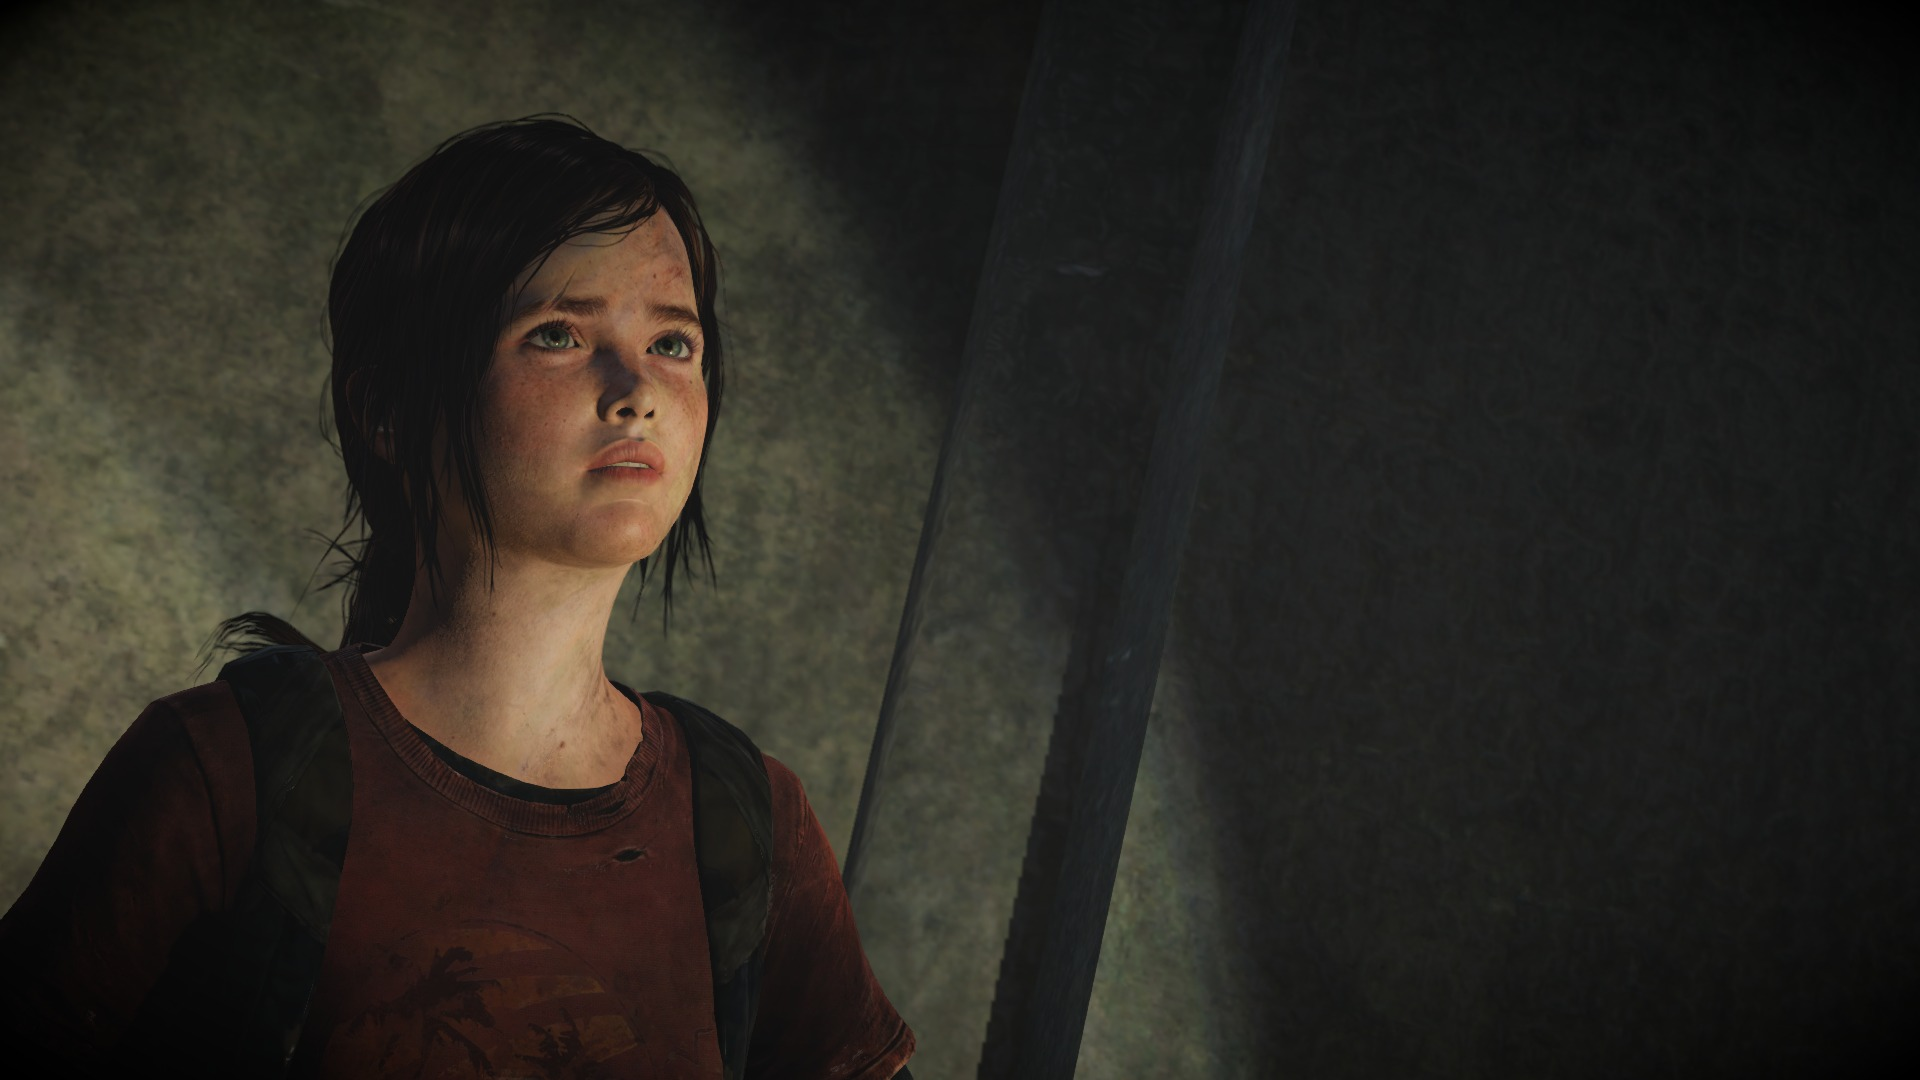 The Last Of Us Ellie Wallpaper Ellie The Last Of Us Remastered